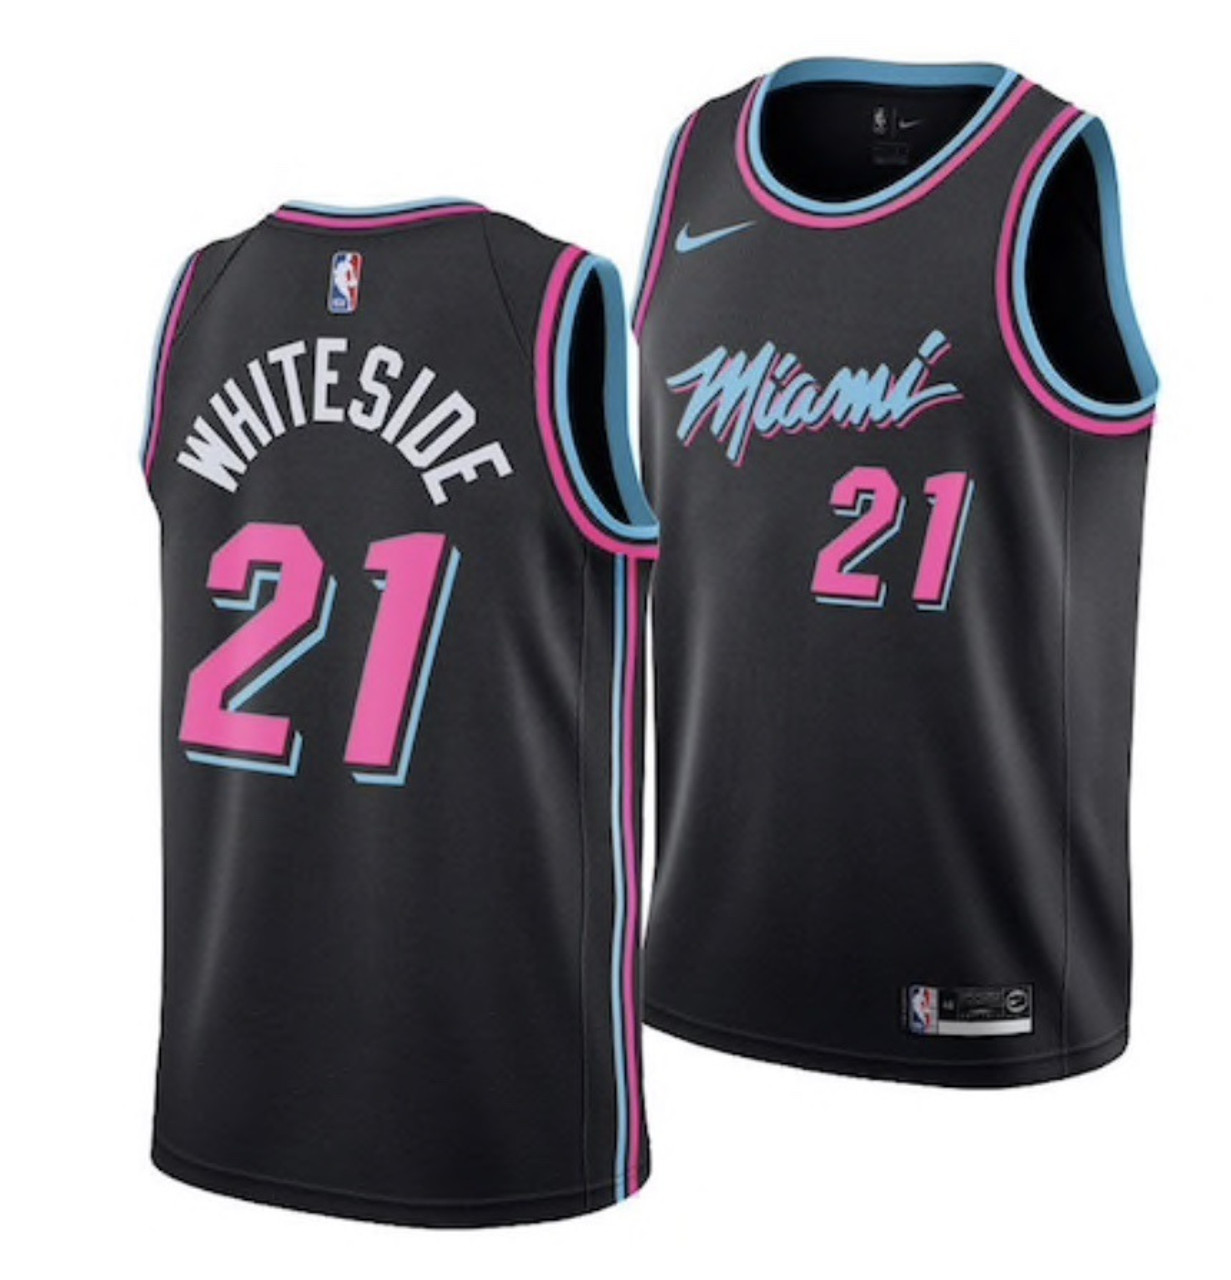 promo code 9a1f7 dead5 (XXL) NBA Miami Heat Hassan Whiteside Miami Vice Style Jersey By Nike